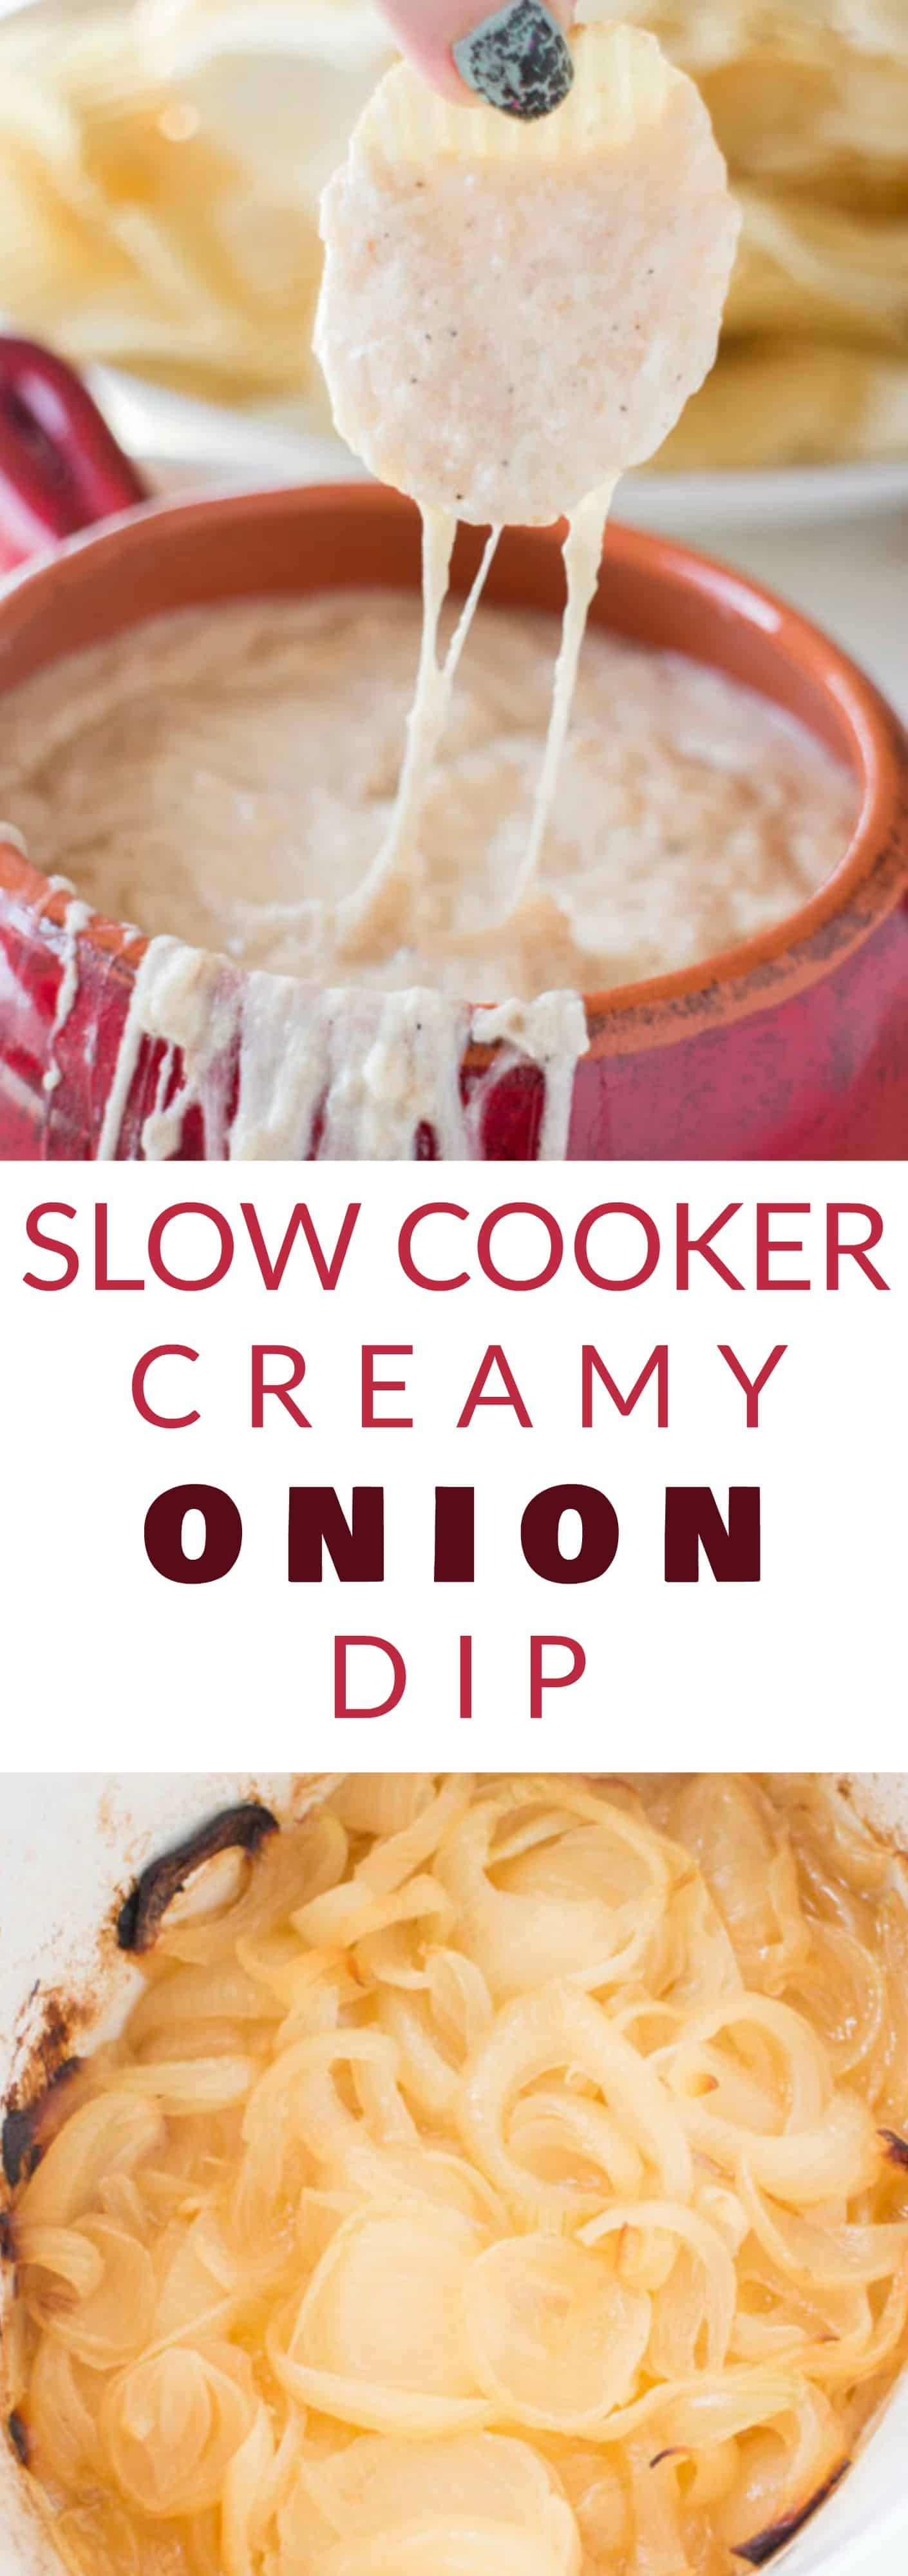 THE BEST PARTY SLOW COOKER Creamy Onion Dip is so easy to make.  Caramelized onions are mixed with sour cream and mozzarella cheese to make a extra creamy homemade dip!  This simple recipe is best served hot with potato chips - perfect for a party dip!